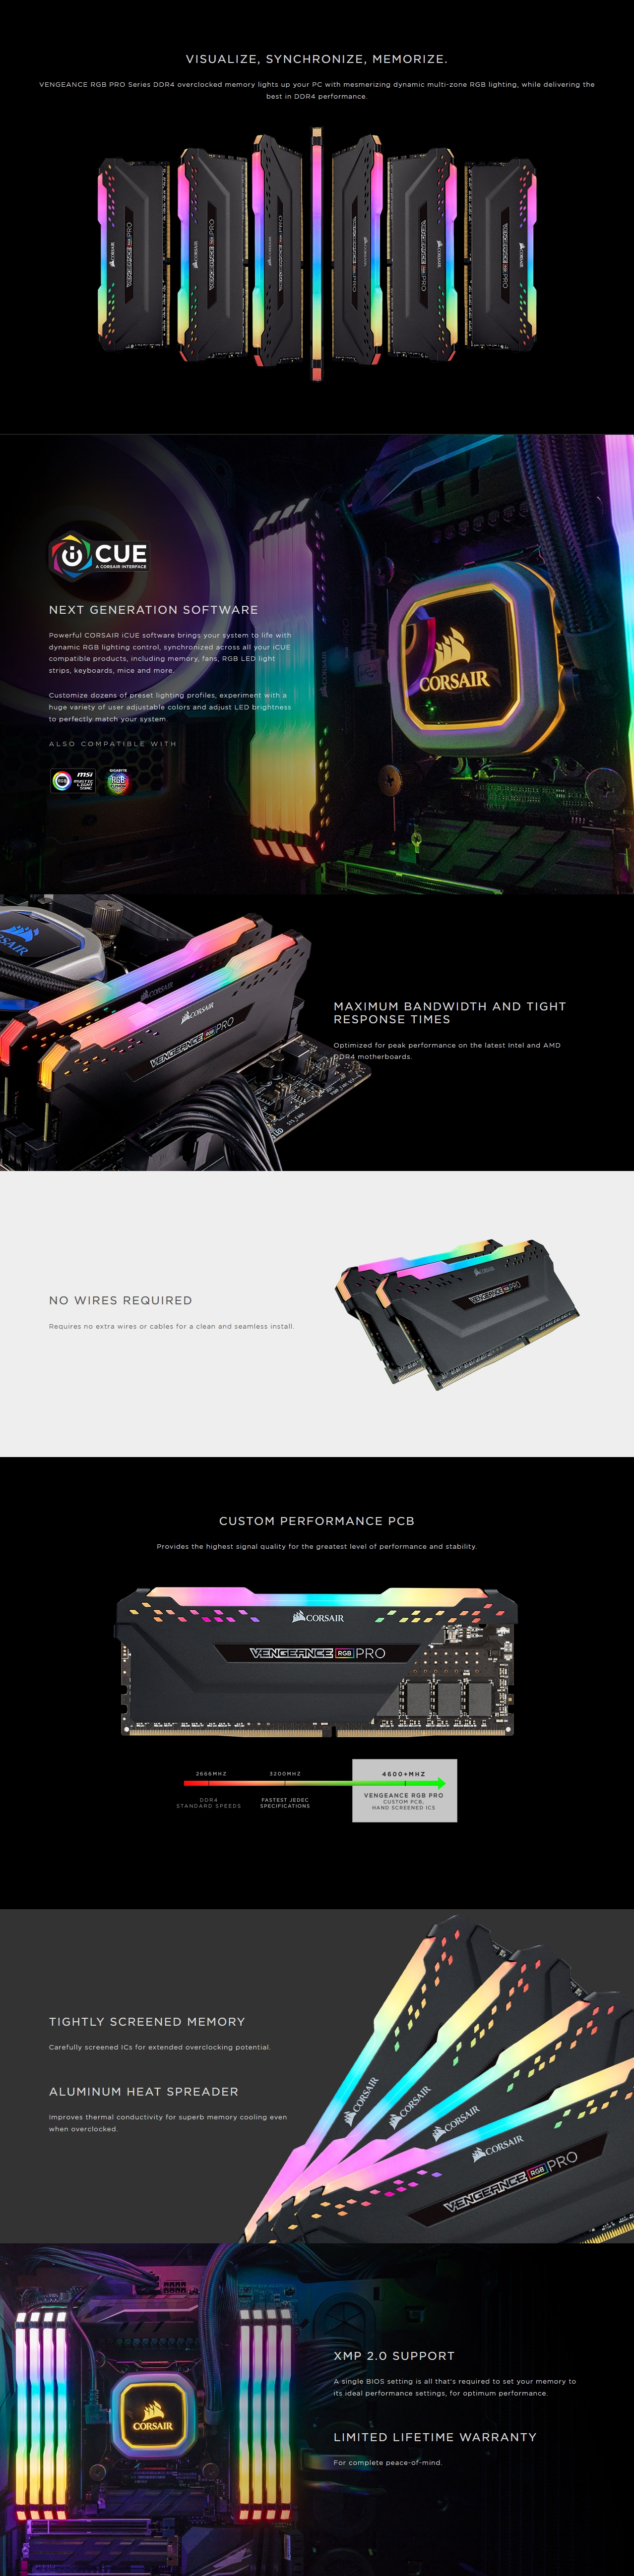 A large marketing image providing additional information about the product Corsair 16GB Kit (2x8GB) DDR4 Vengeance RGB PRO C16 3200Mhz - White - Additional alt info not provided